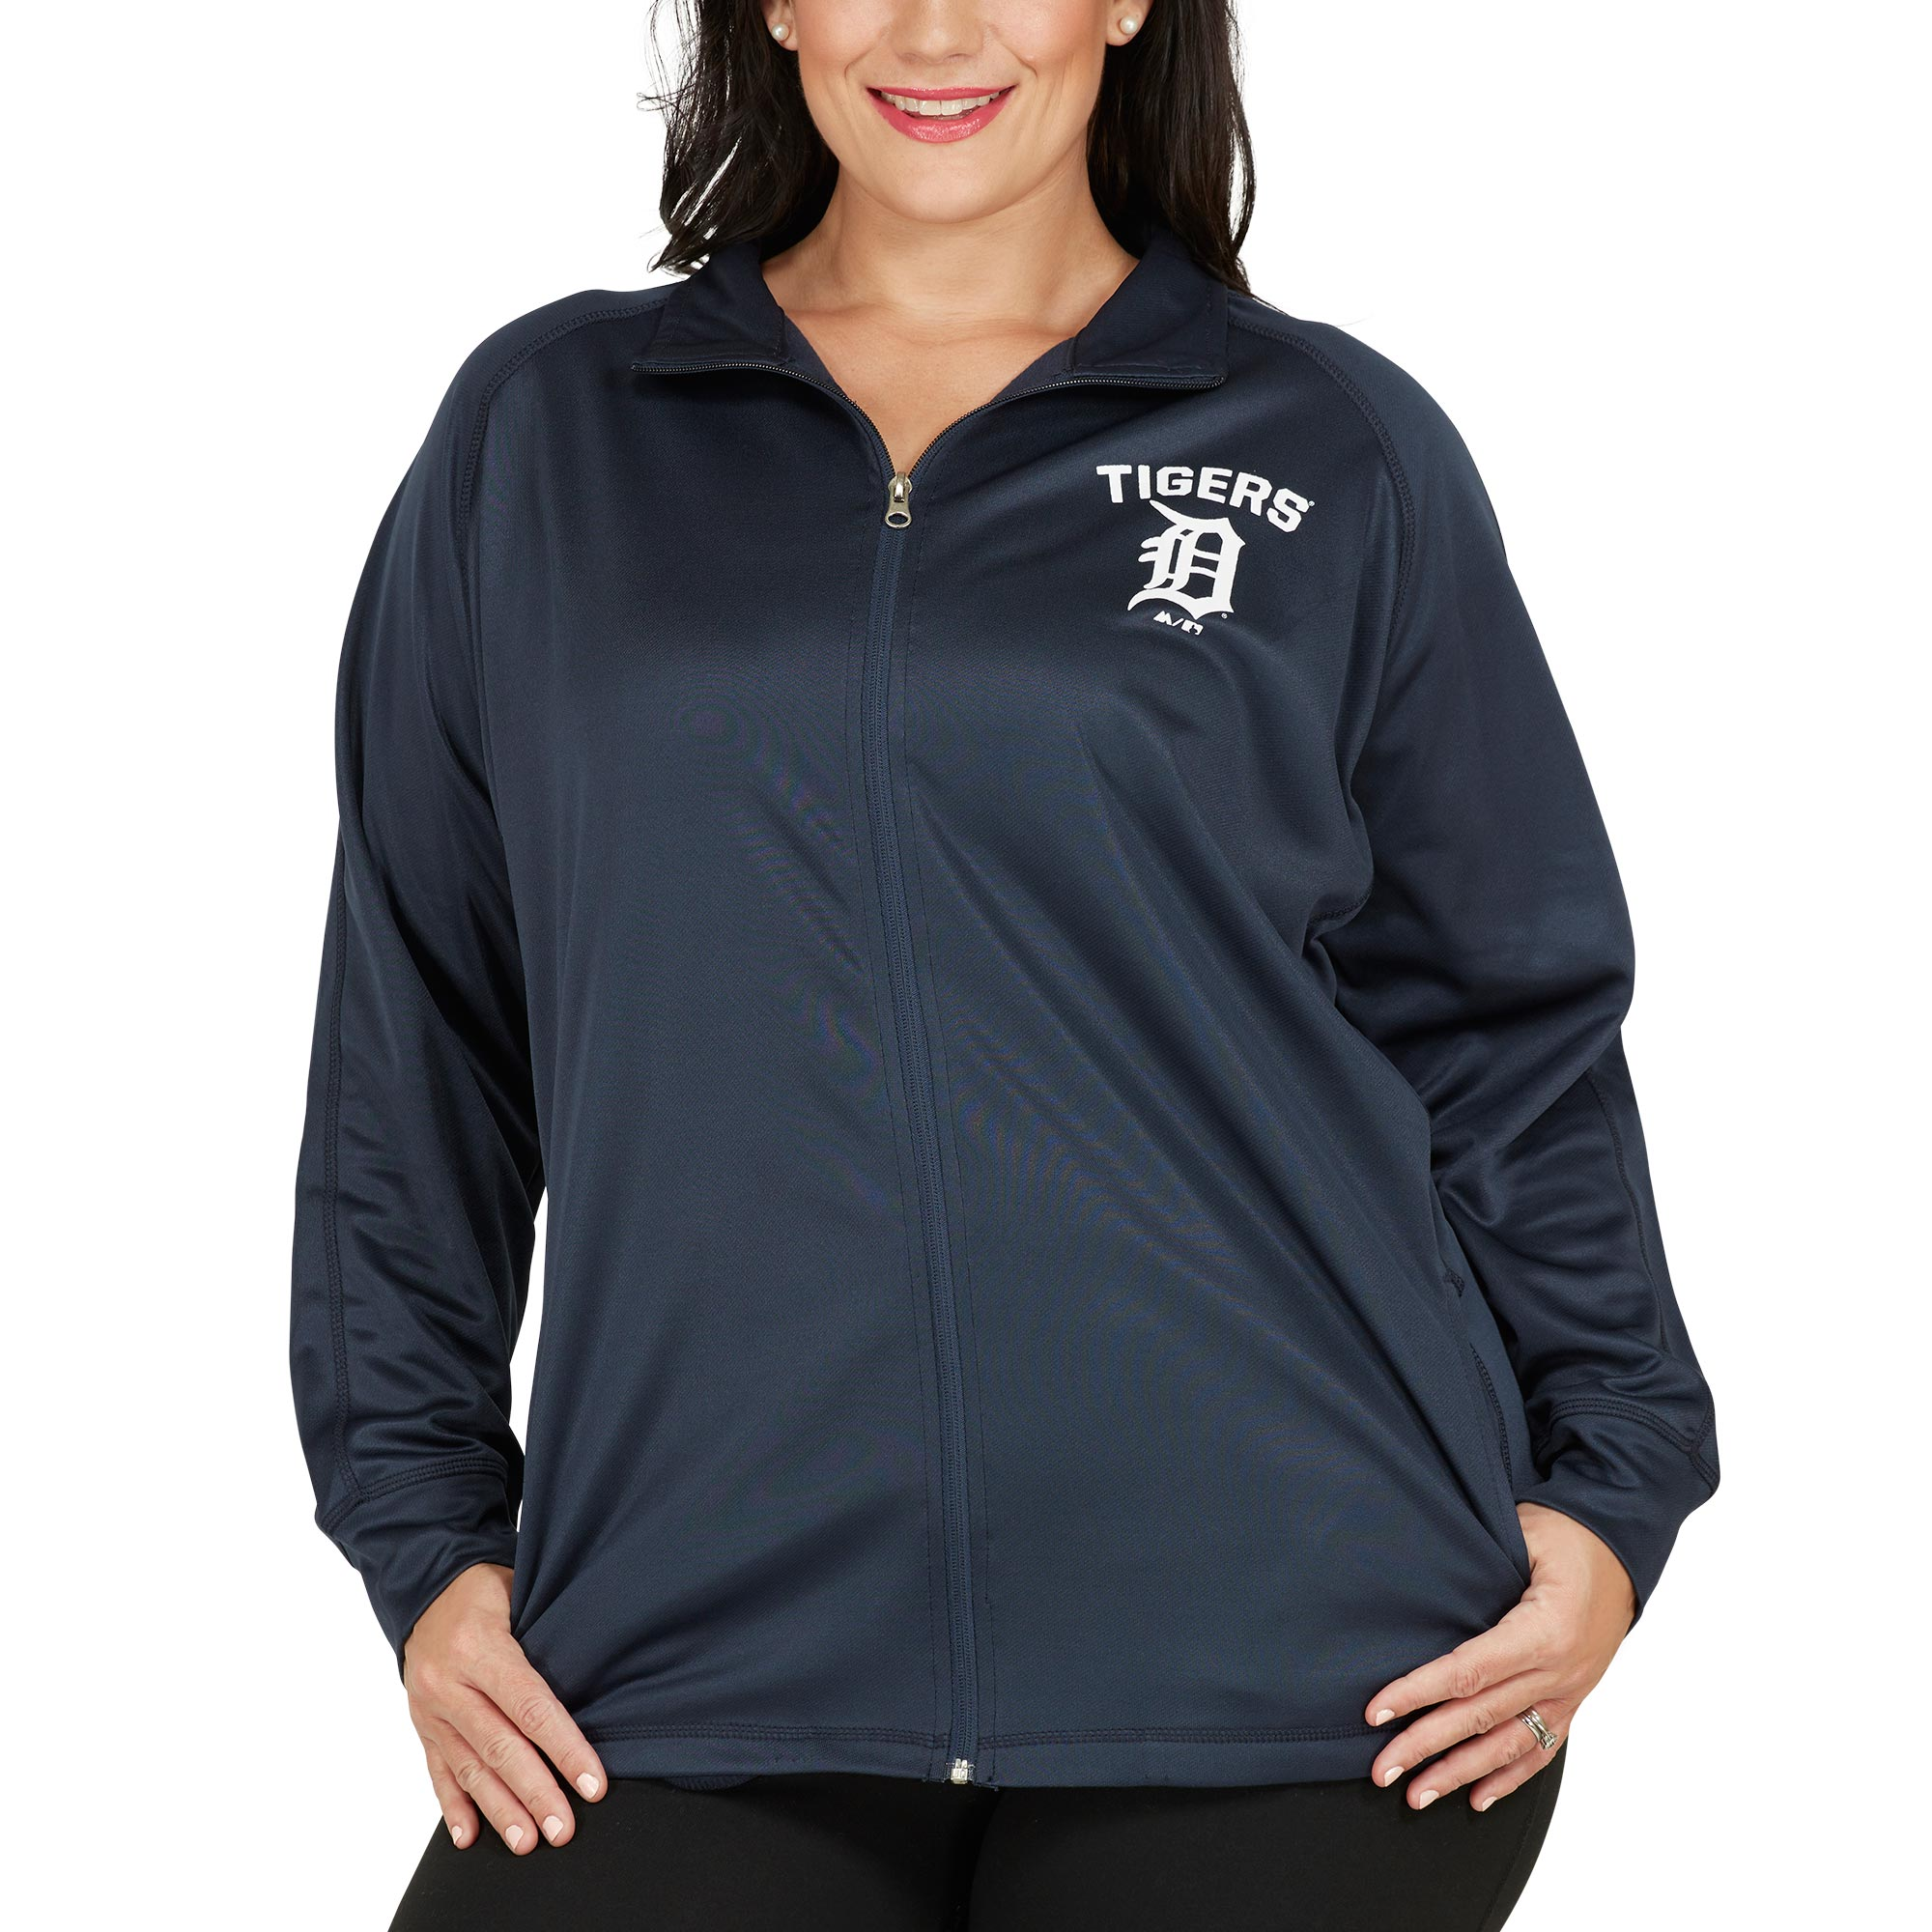 Detroit Tigers Majestic Women's Plus Size Her Winner Therma Base Full-Zip Track Jacket Navy by Profile